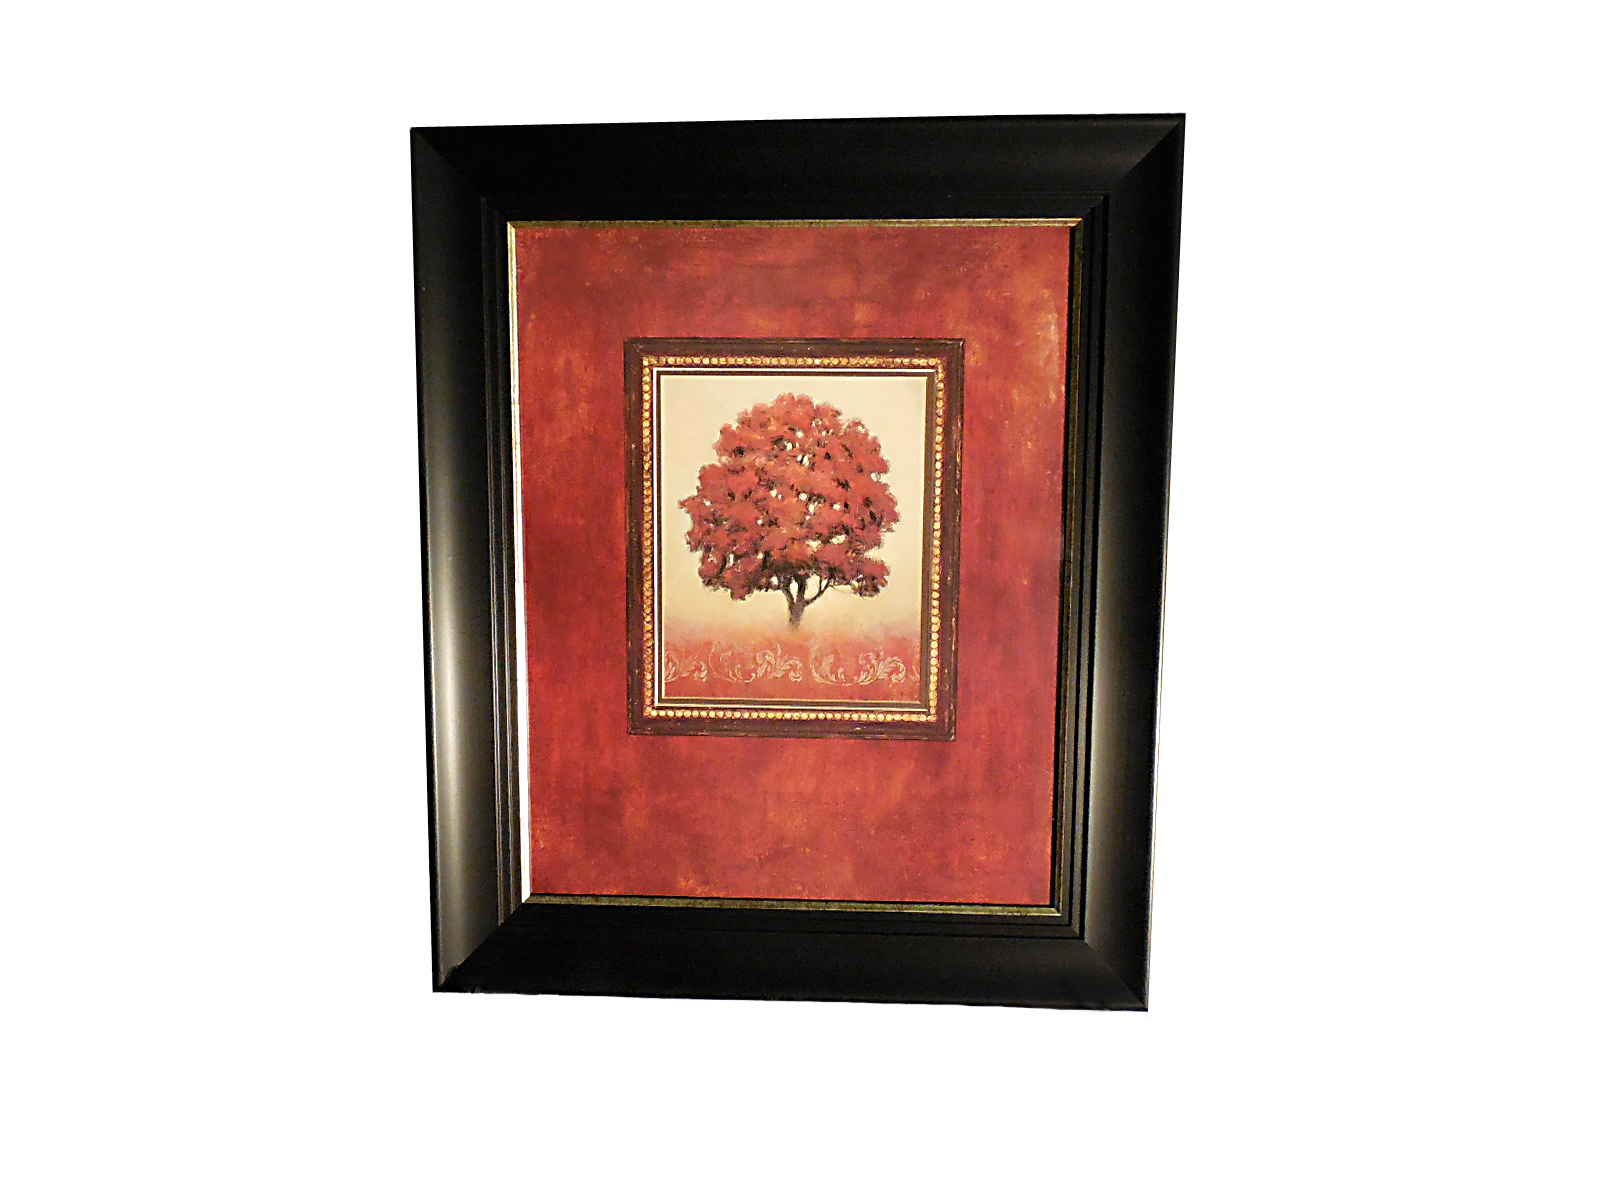 J Wiens Red Tree